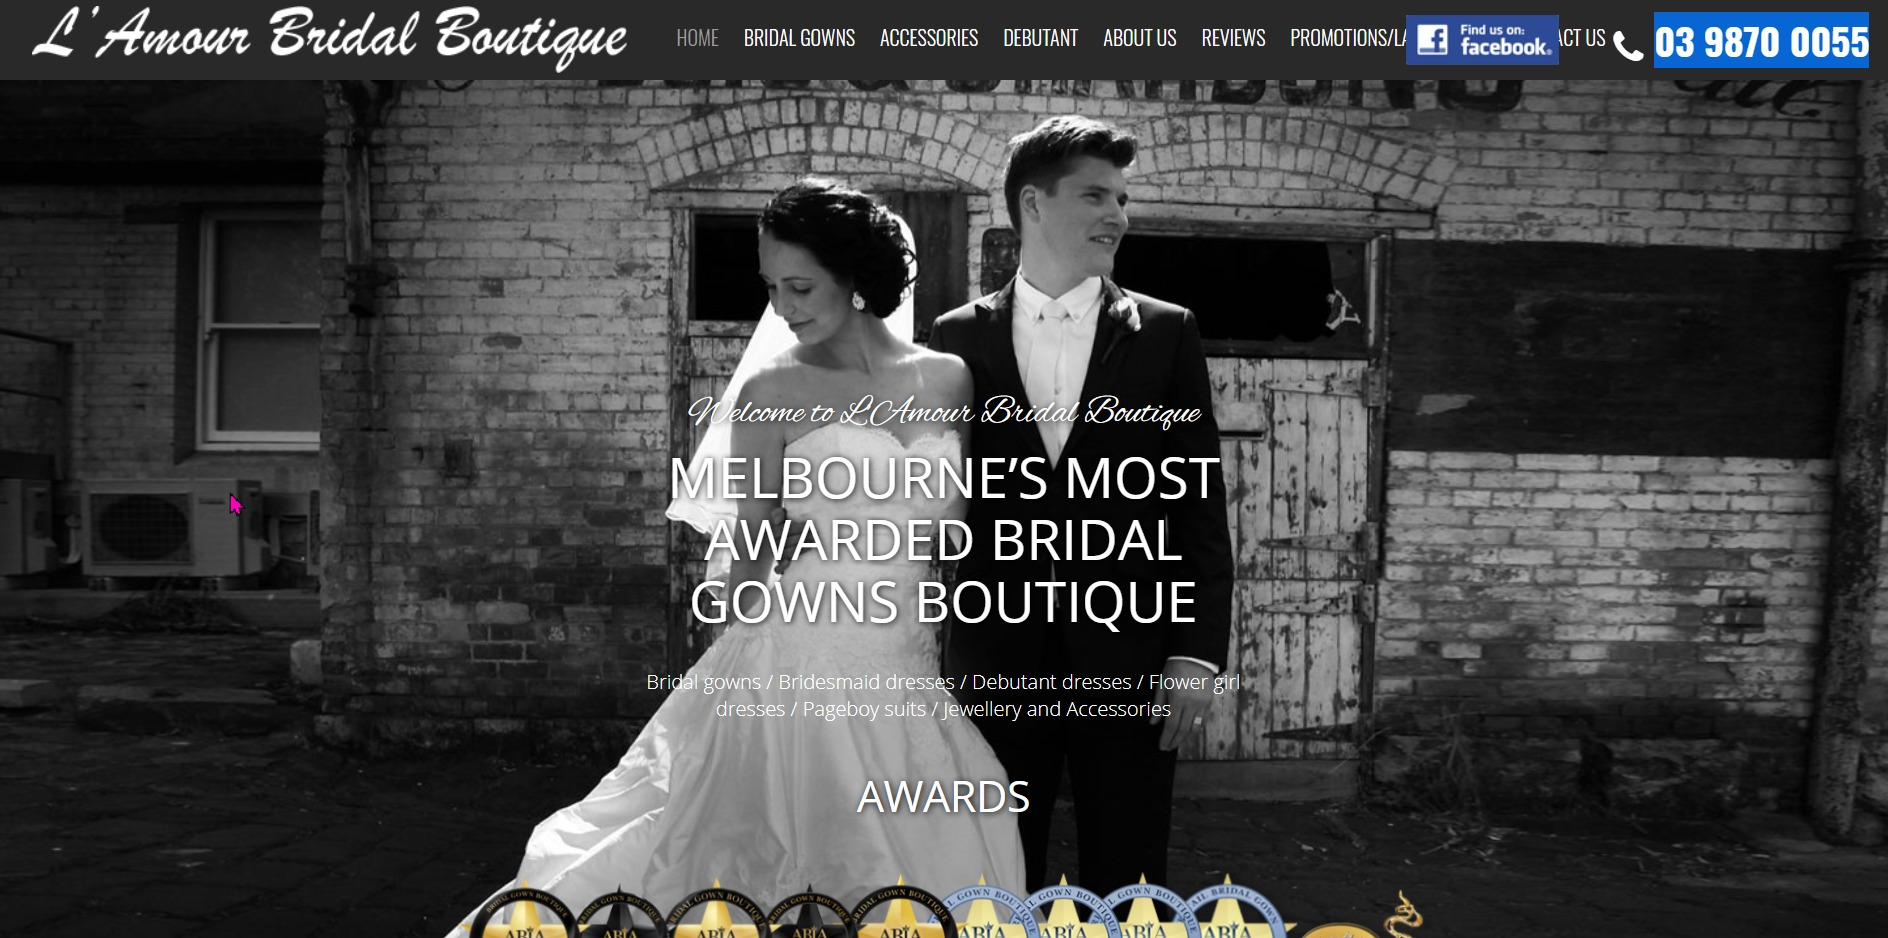 L'amour Bridal Boutique